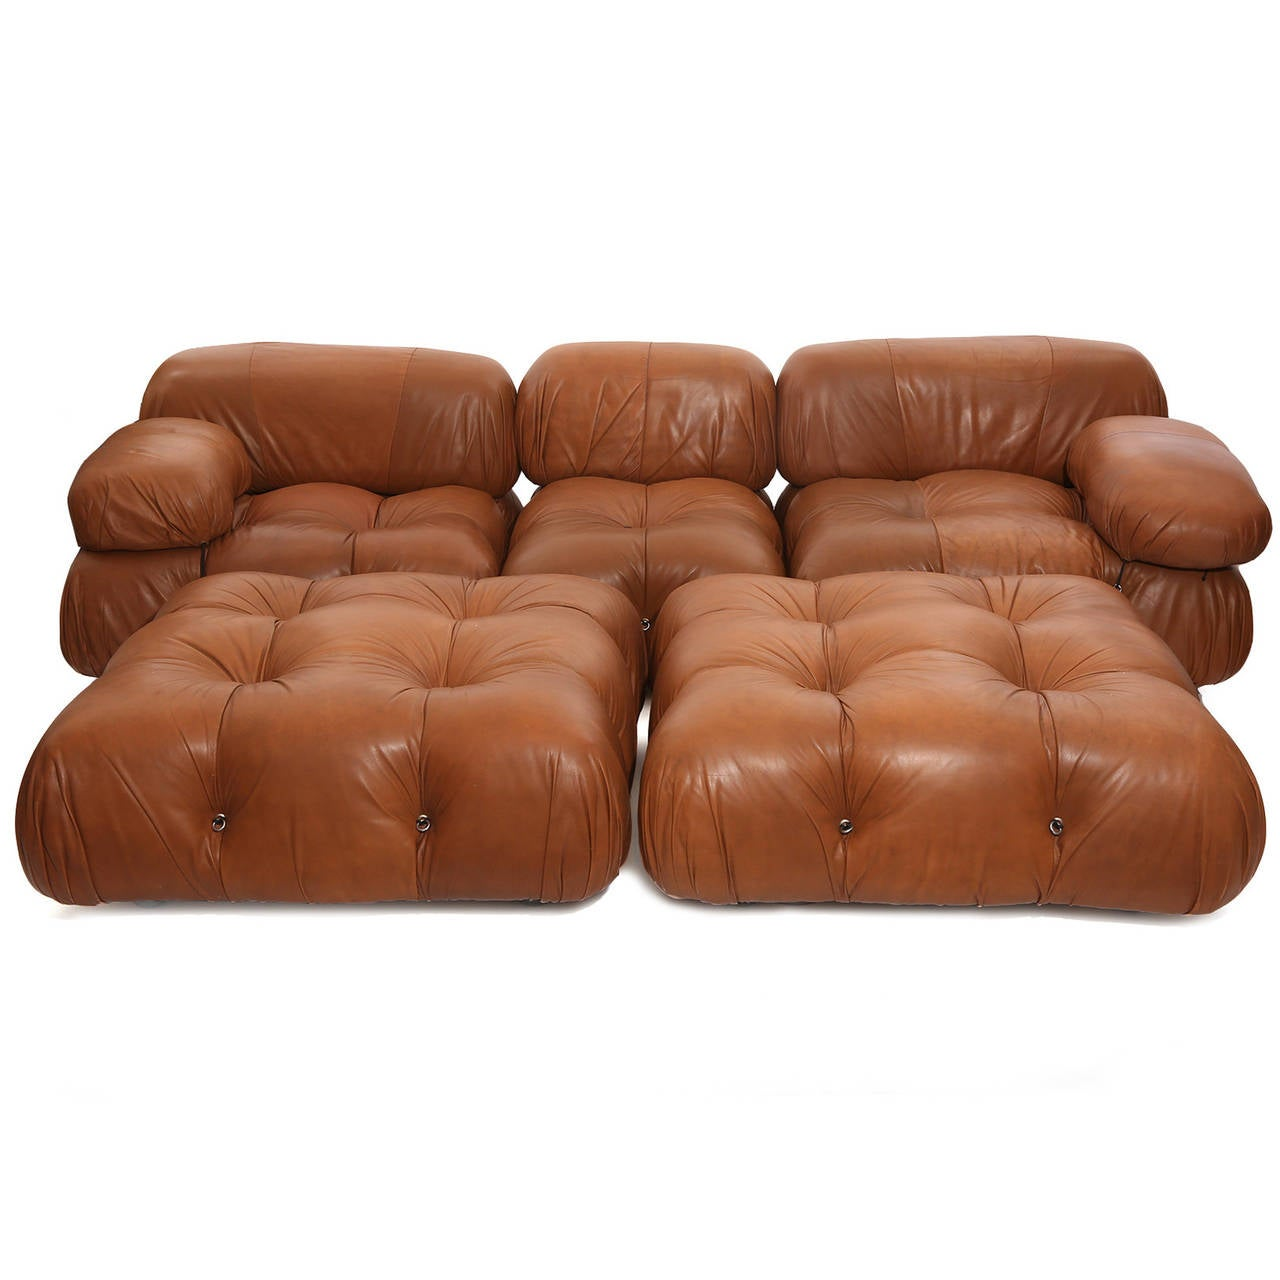 rare mario bellini camaleonda sofa and ottomans at 1stdibs. Black Bedroom Furniture Sets. Home Design Ideas